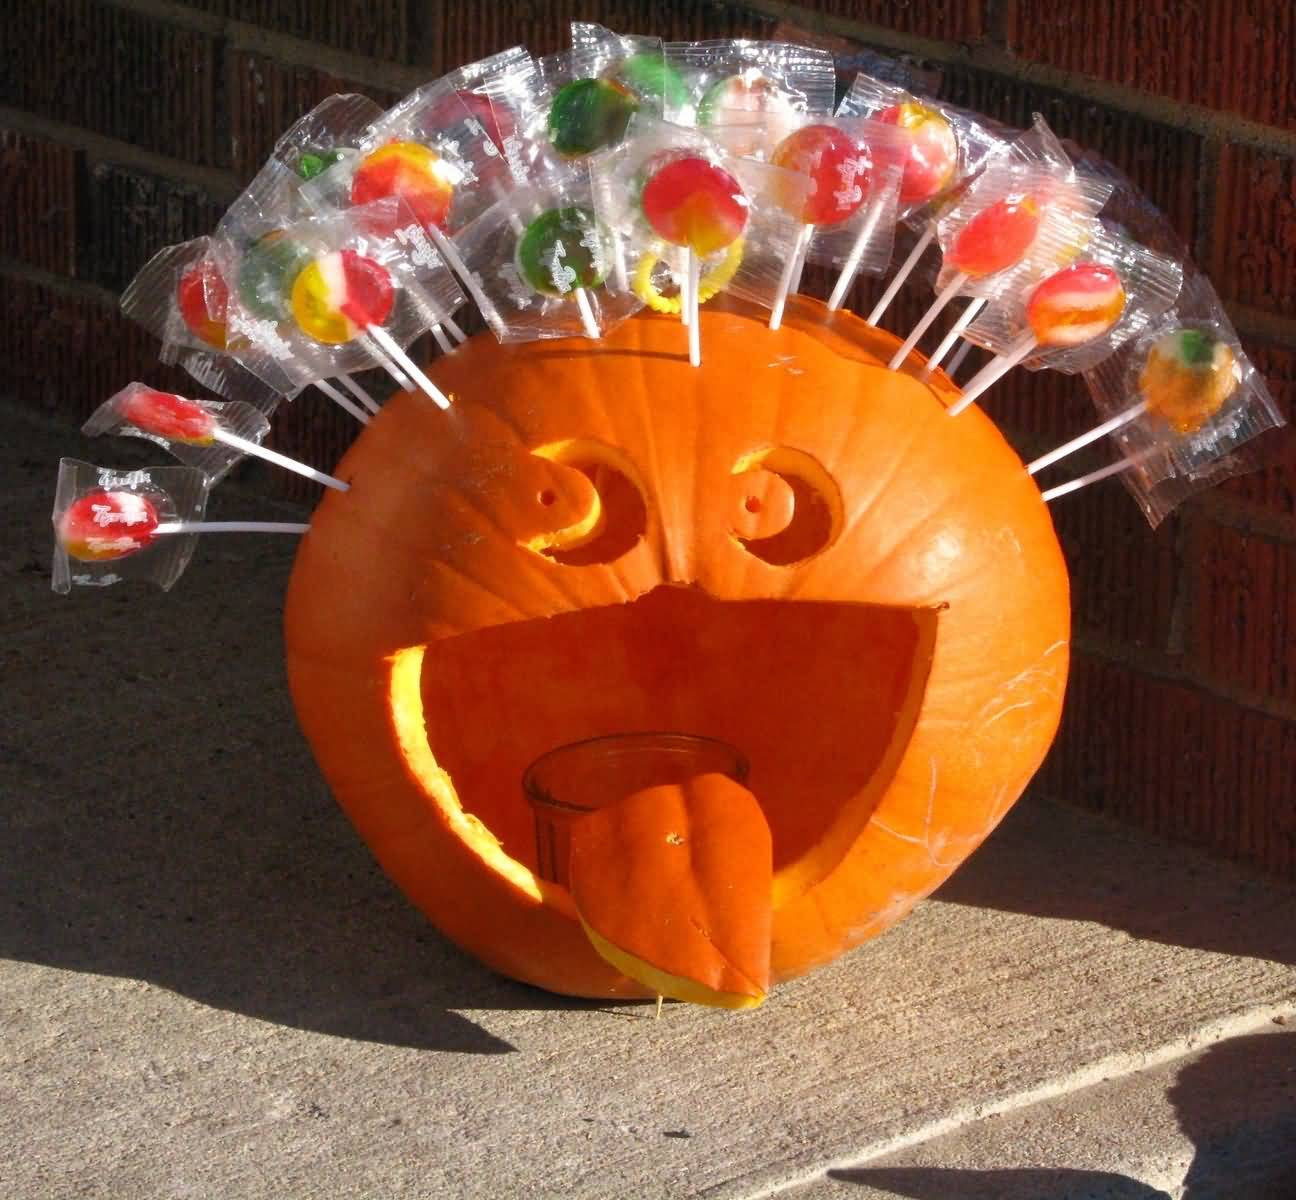 50 Most Funny Pumpkin Pictures And Photos